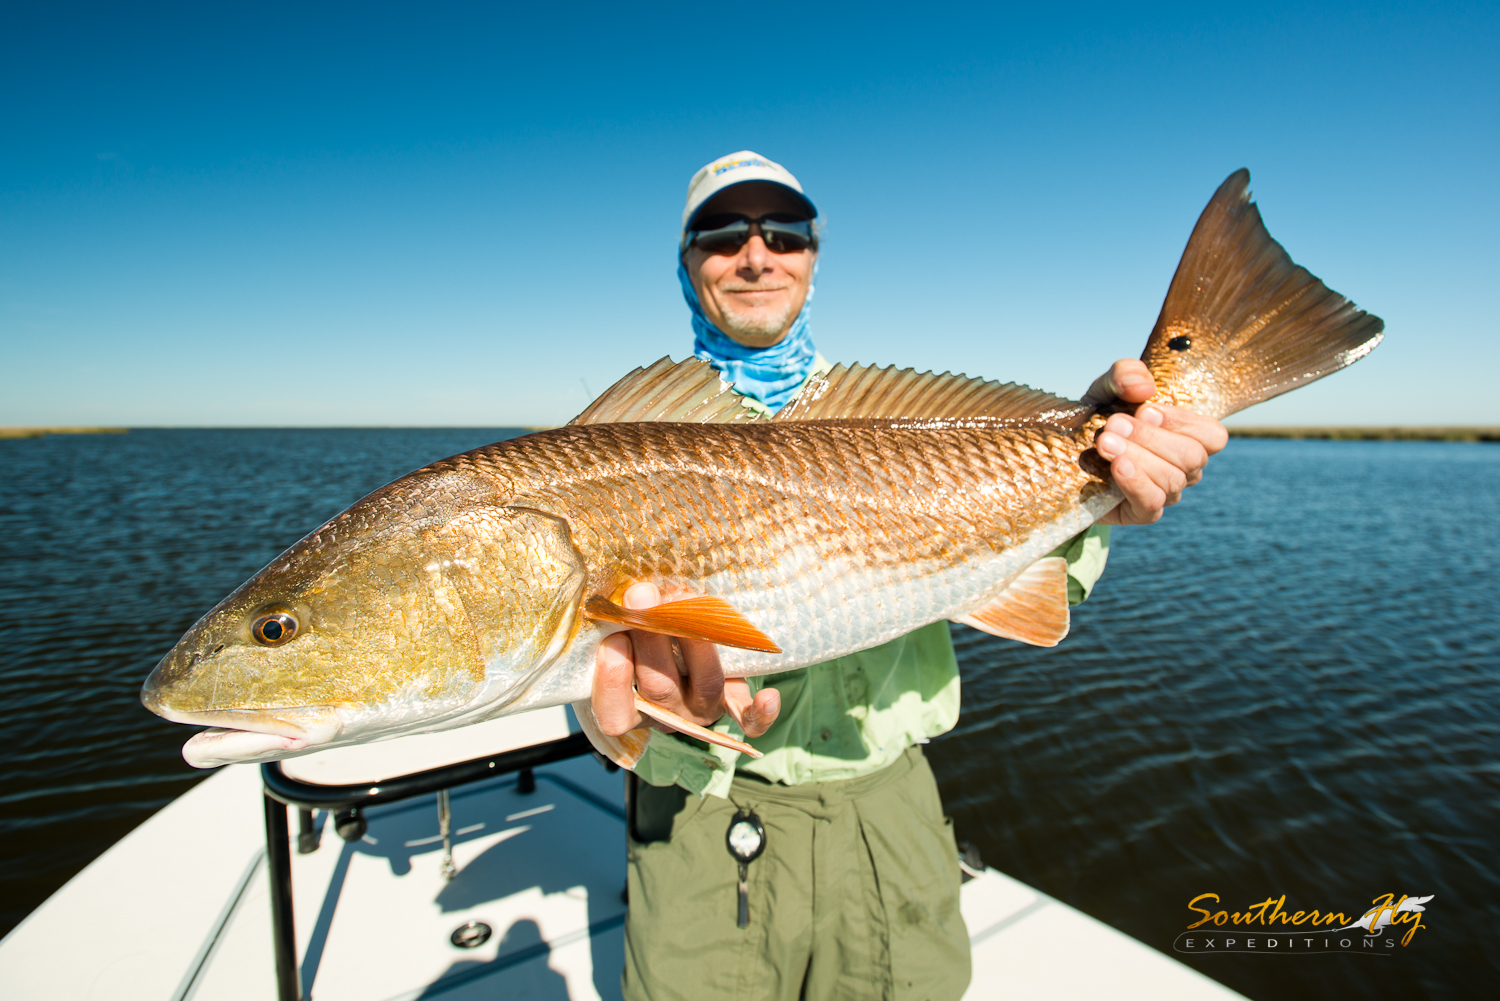 Montana Anglers Fly Fishing New Orleans - Southern Fly Expeditions LLC